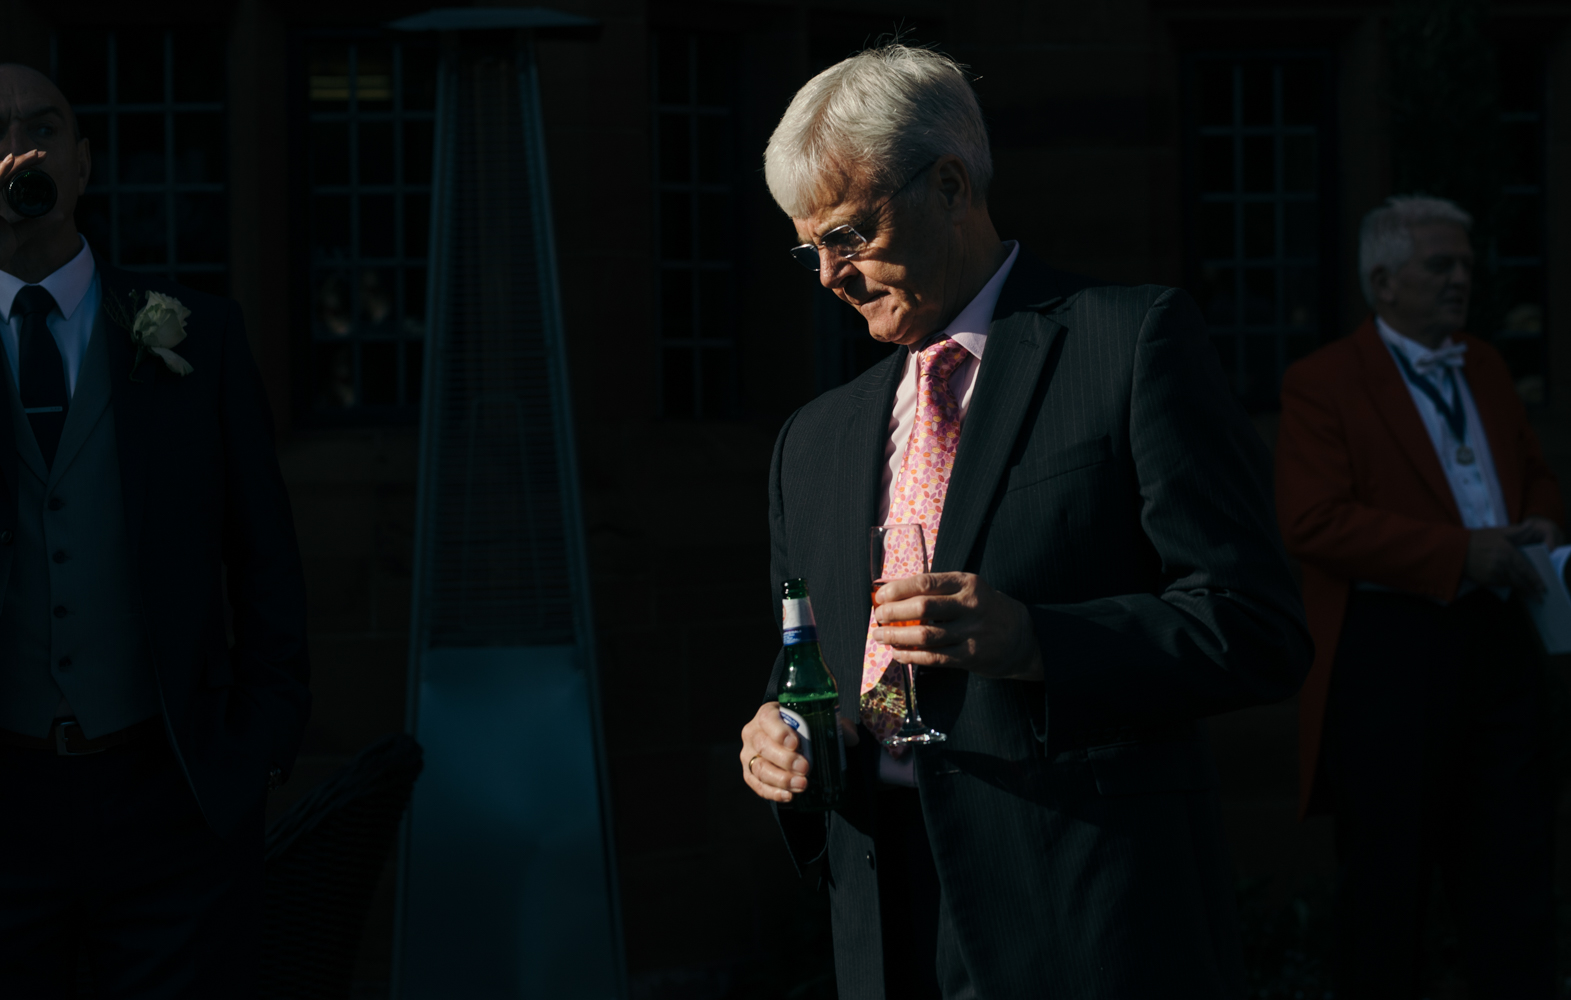 A male guest during the drinks reception